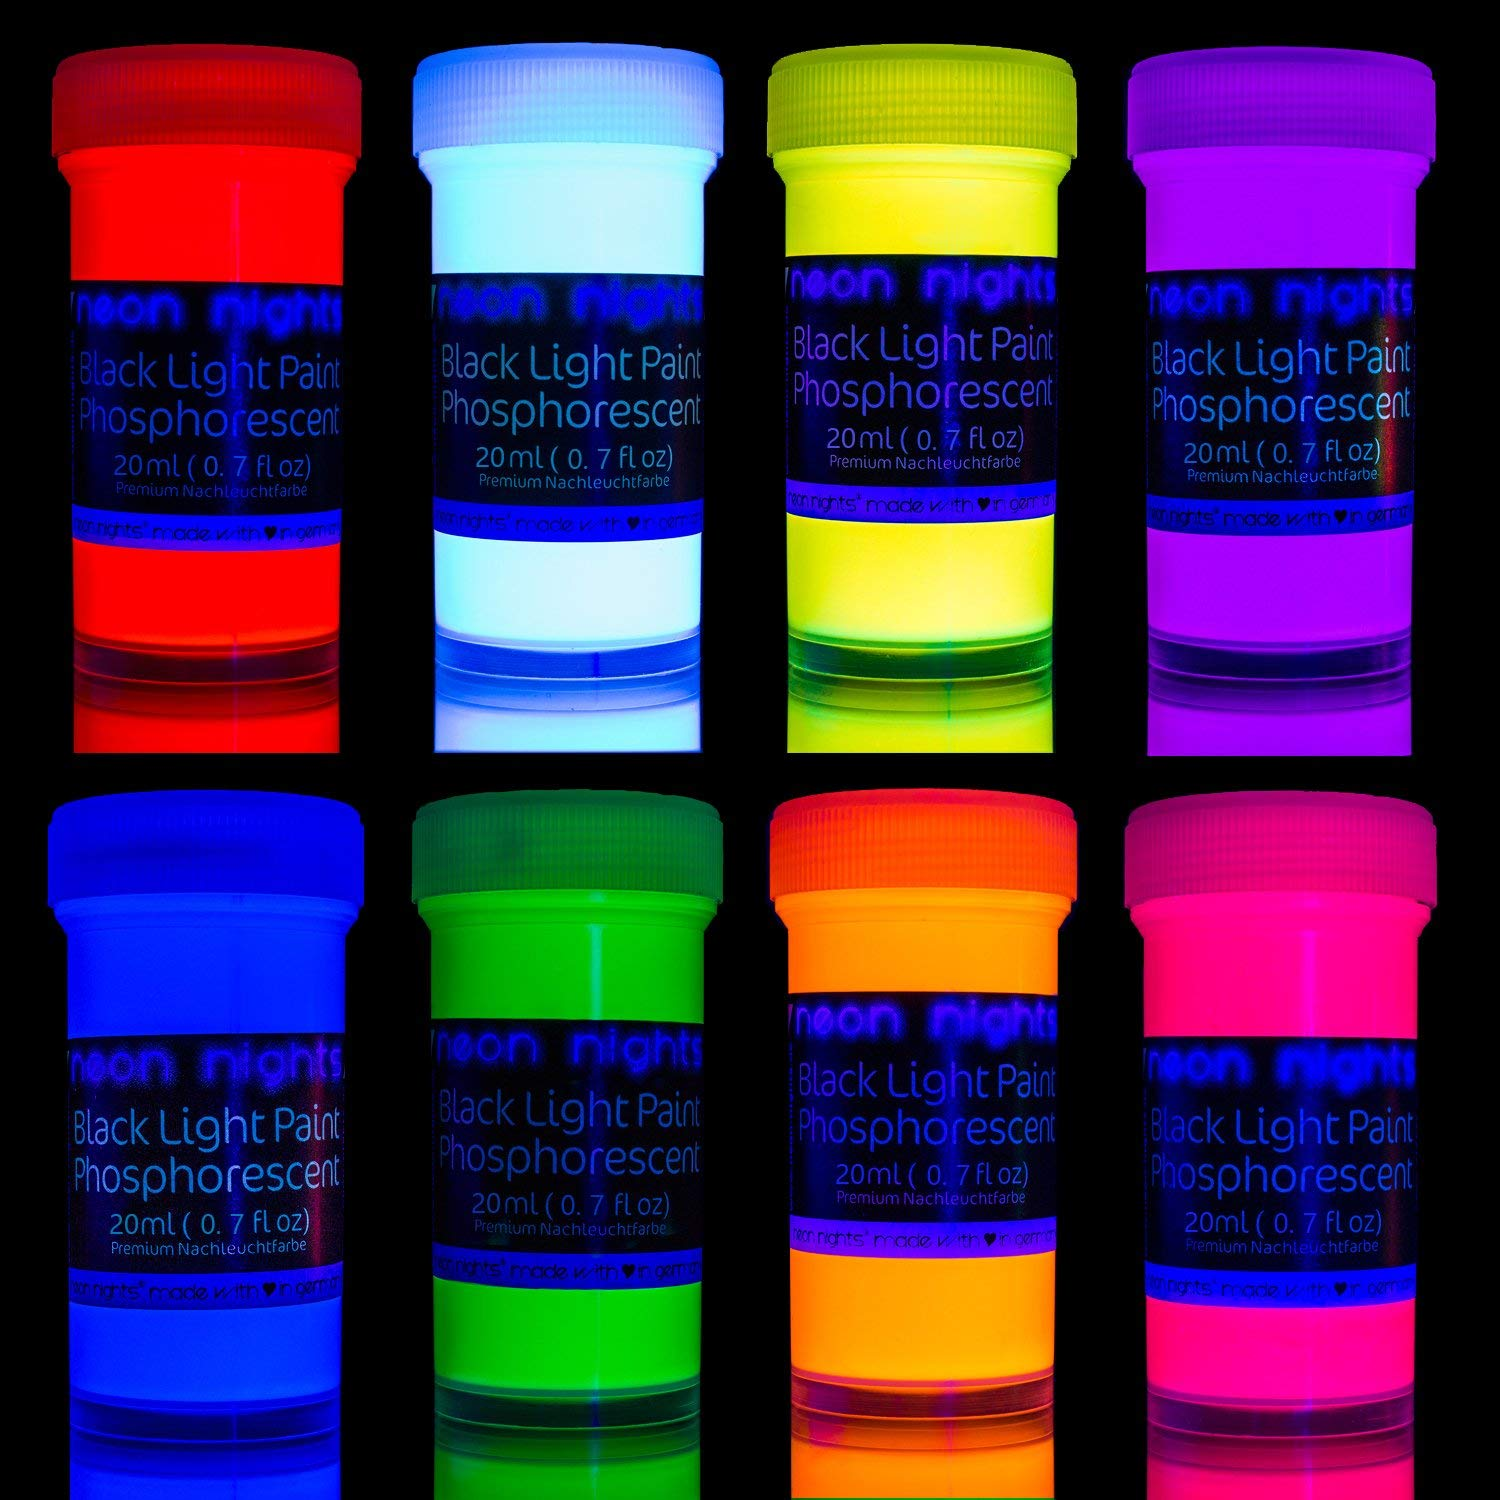 neon nights Glow in The Dark Paint | Luminescent | Phosphorescent | Self-Luminous Paints - Set of 8